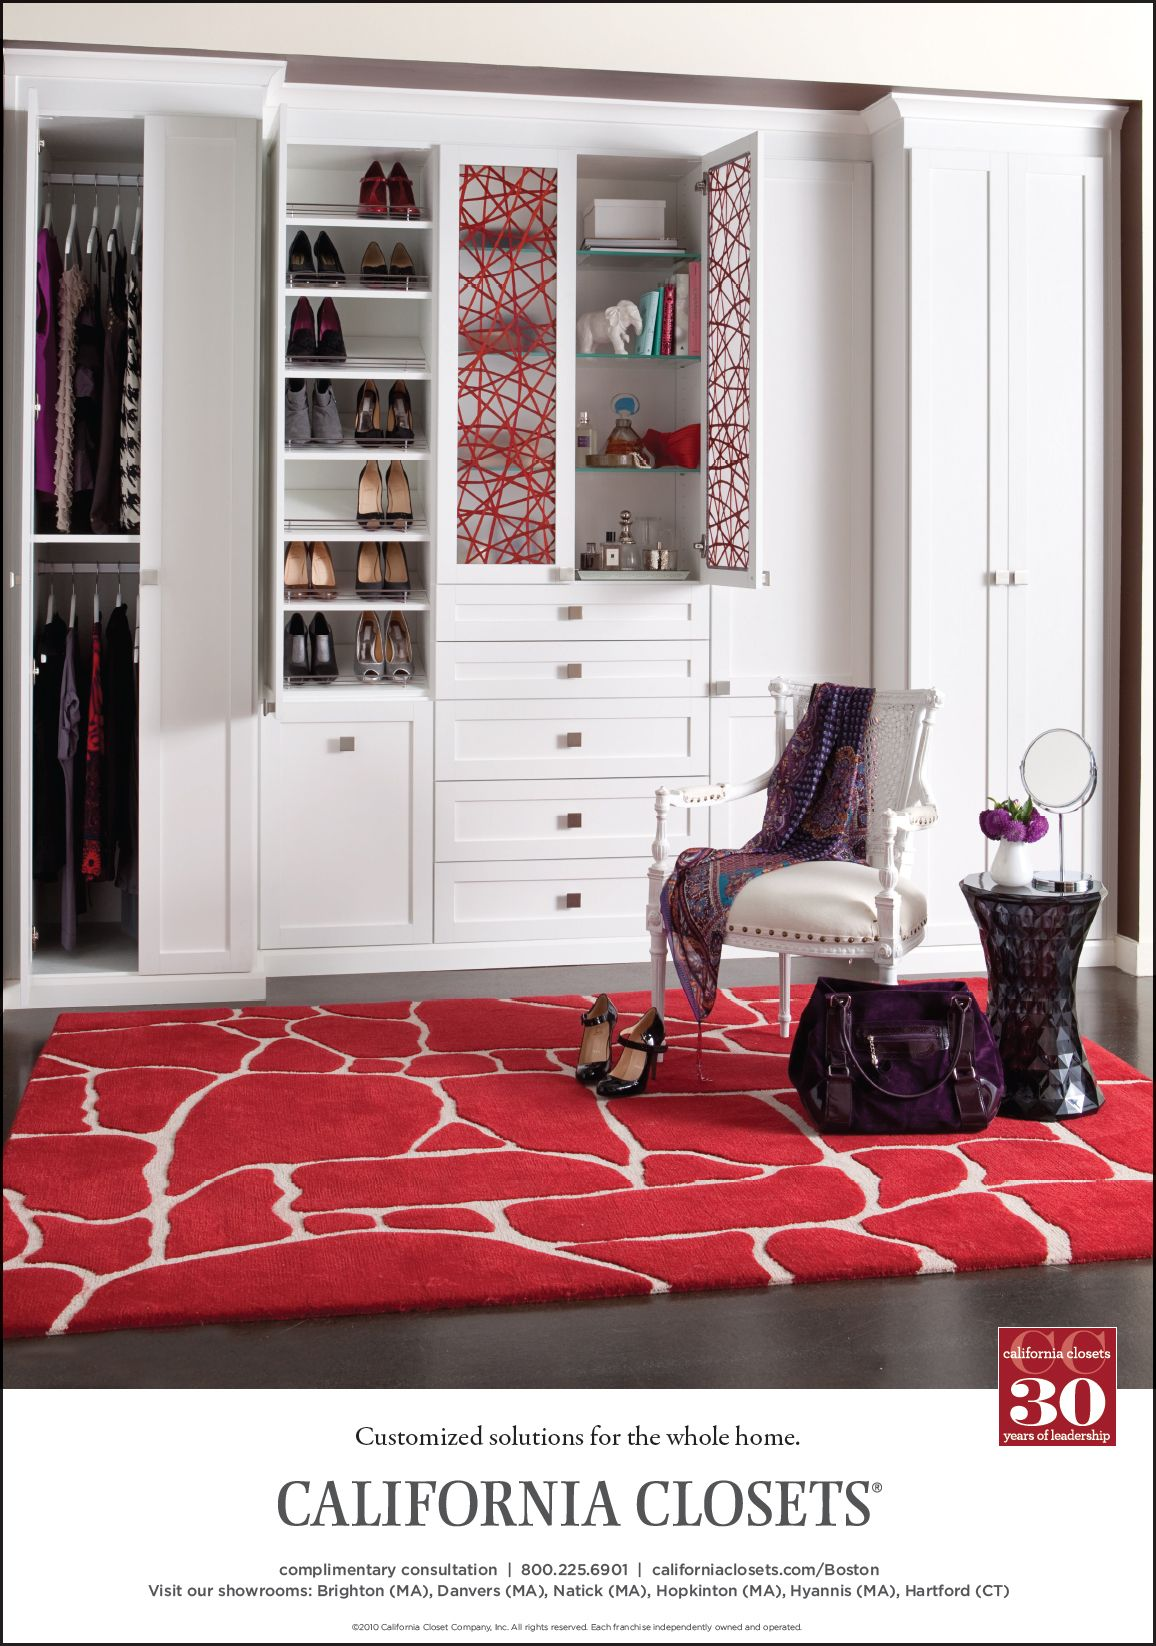 Reach In Closet With Decorative Glass Doors